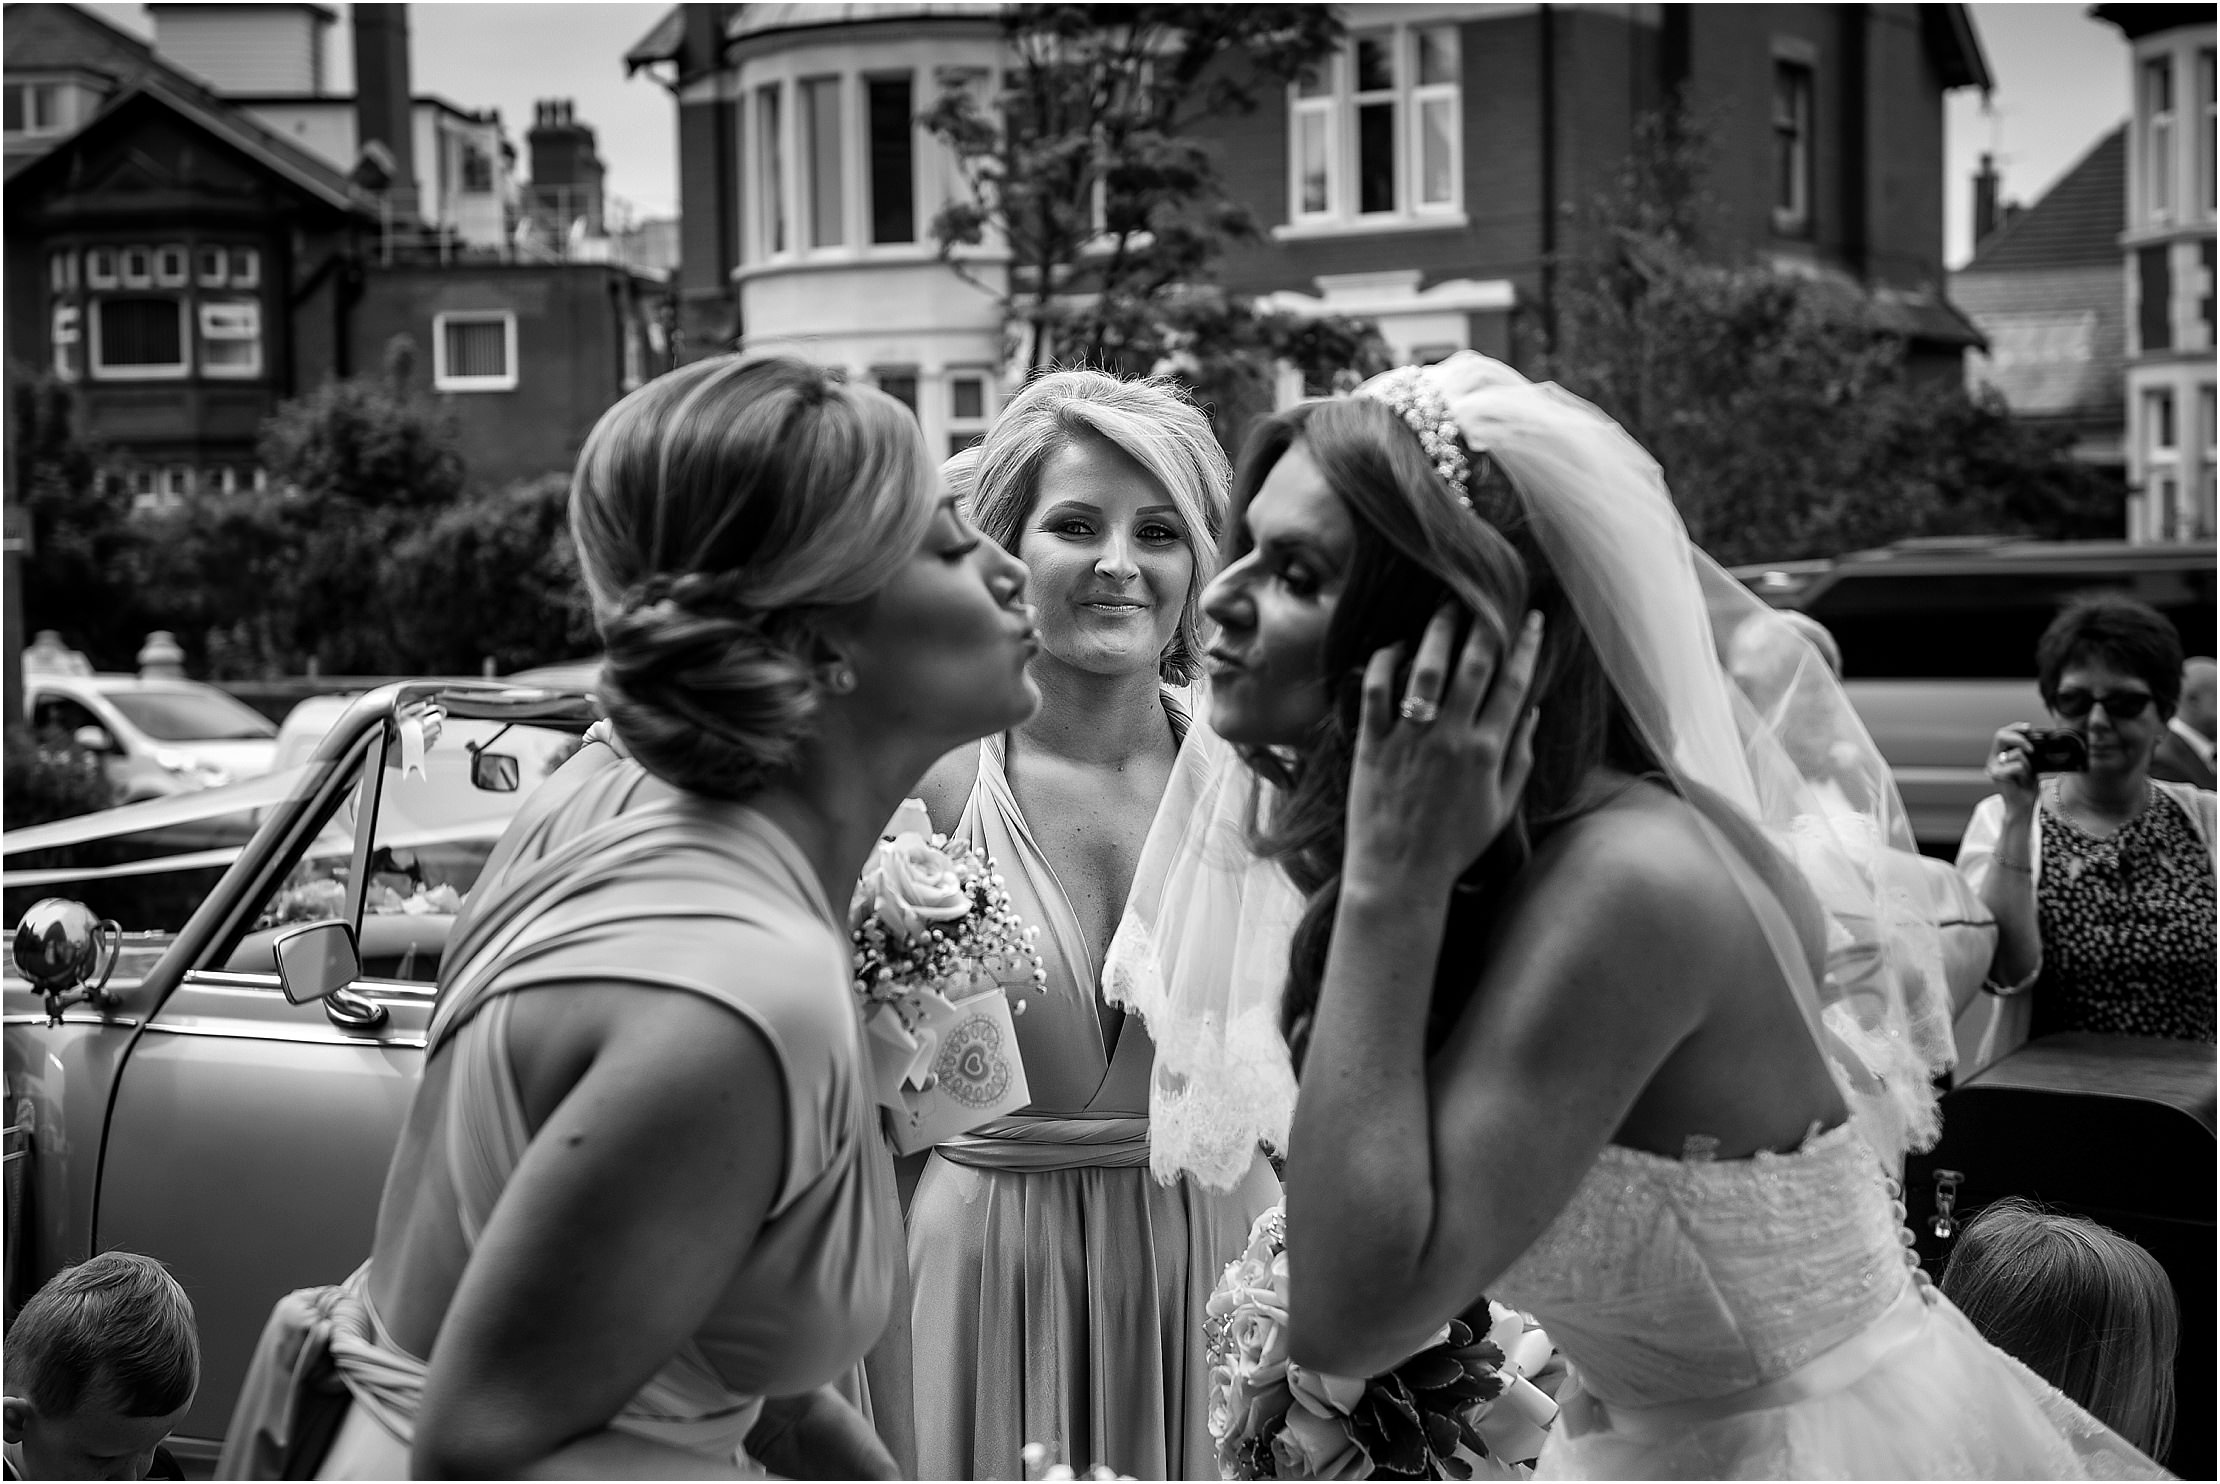 dan-wootton-wedding-photography-2015 - 046.jpg